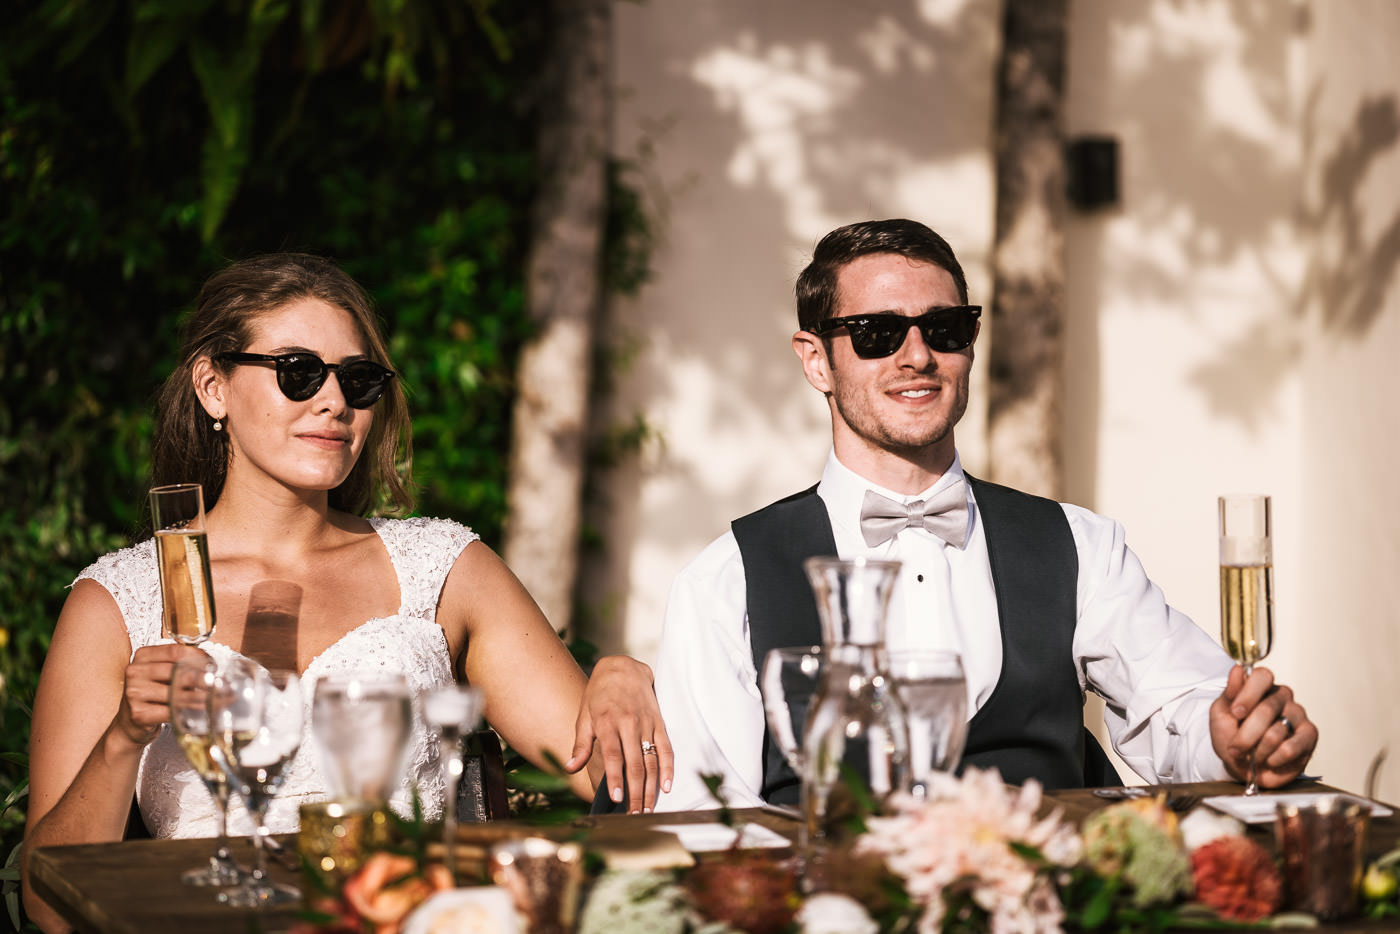 Couple rocks their shades for a cool picture at their reception.